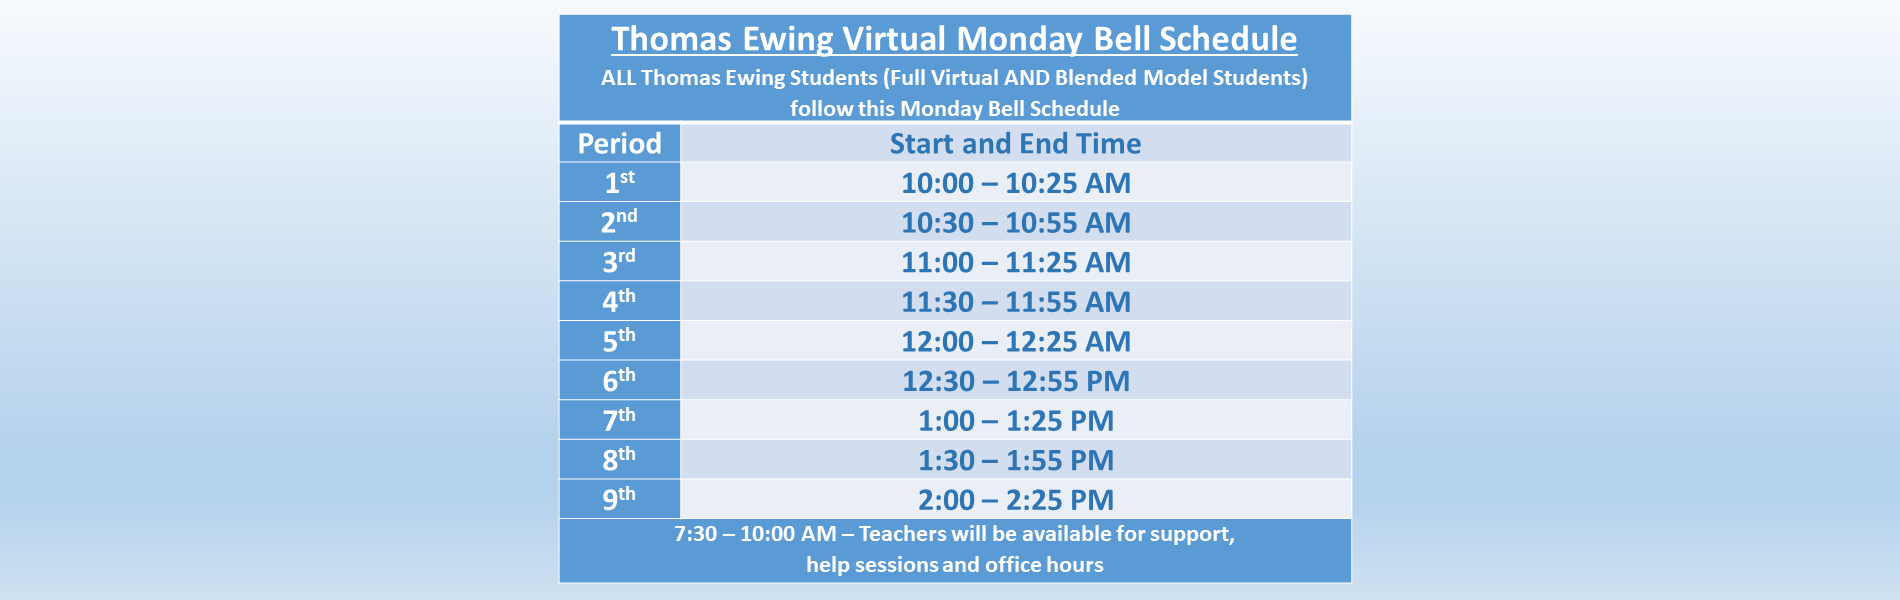 TEJH Virtual Monday Bell Schedule